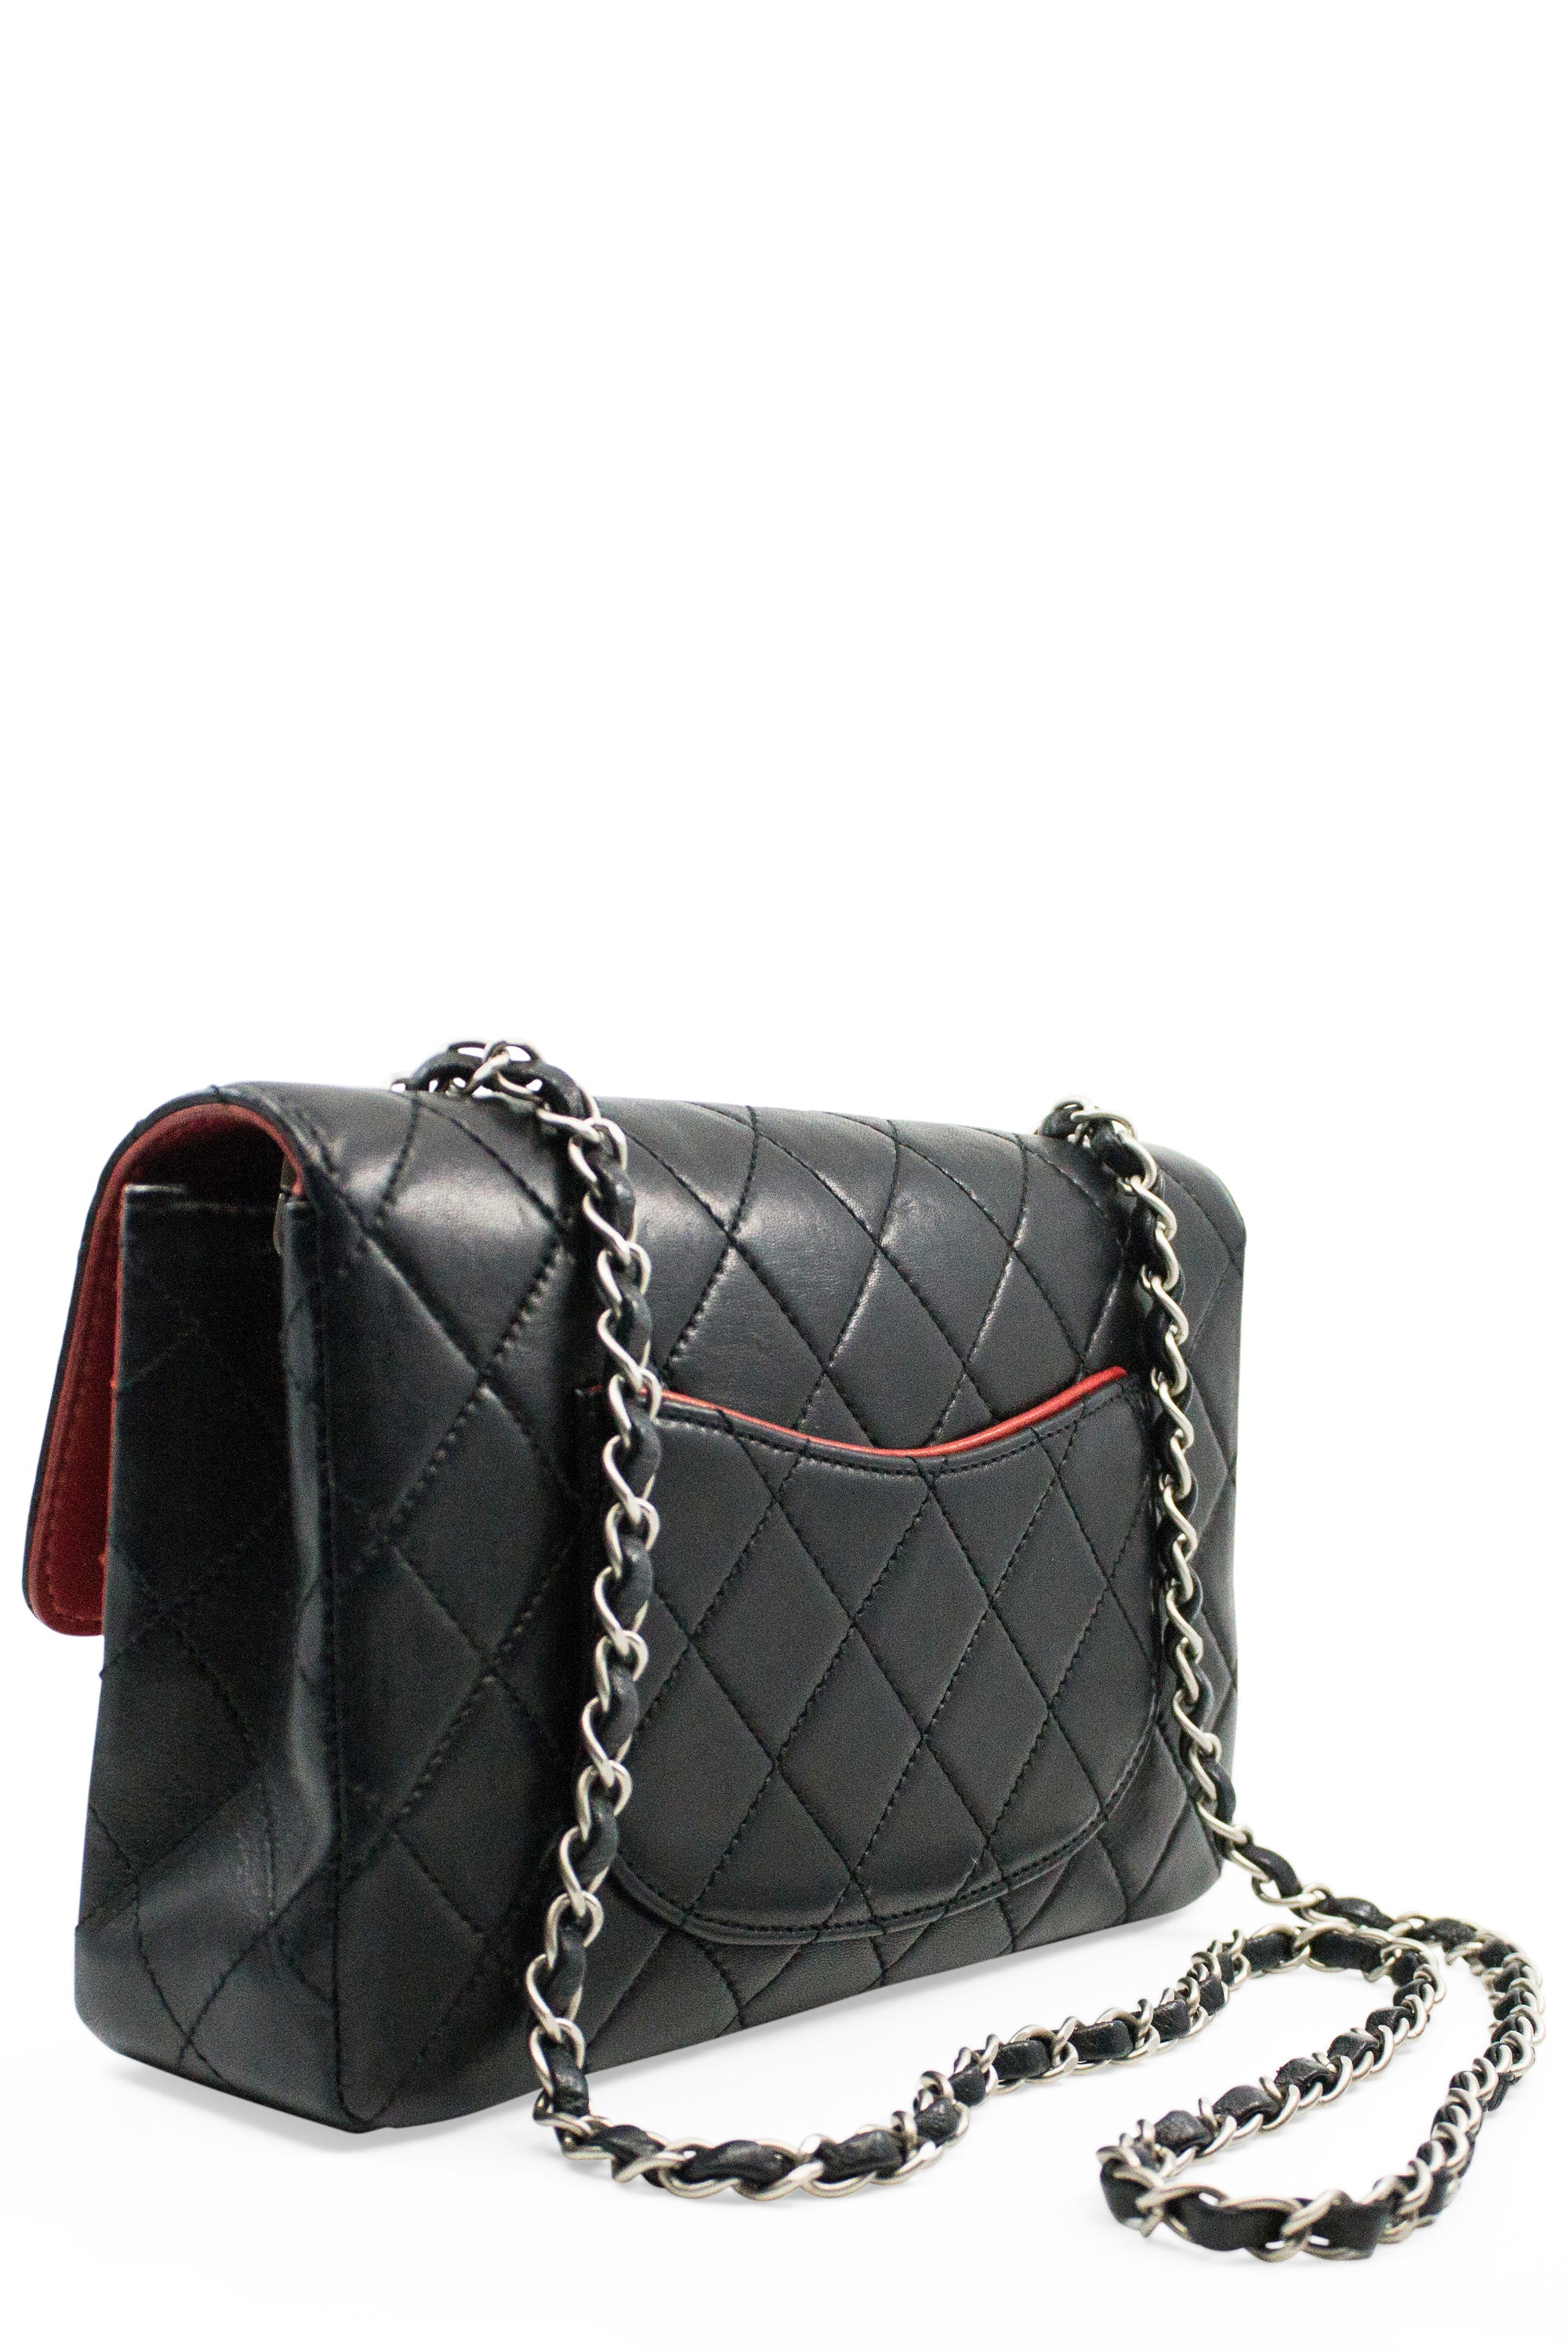 CHANEL Flap Bag Medium Red Black